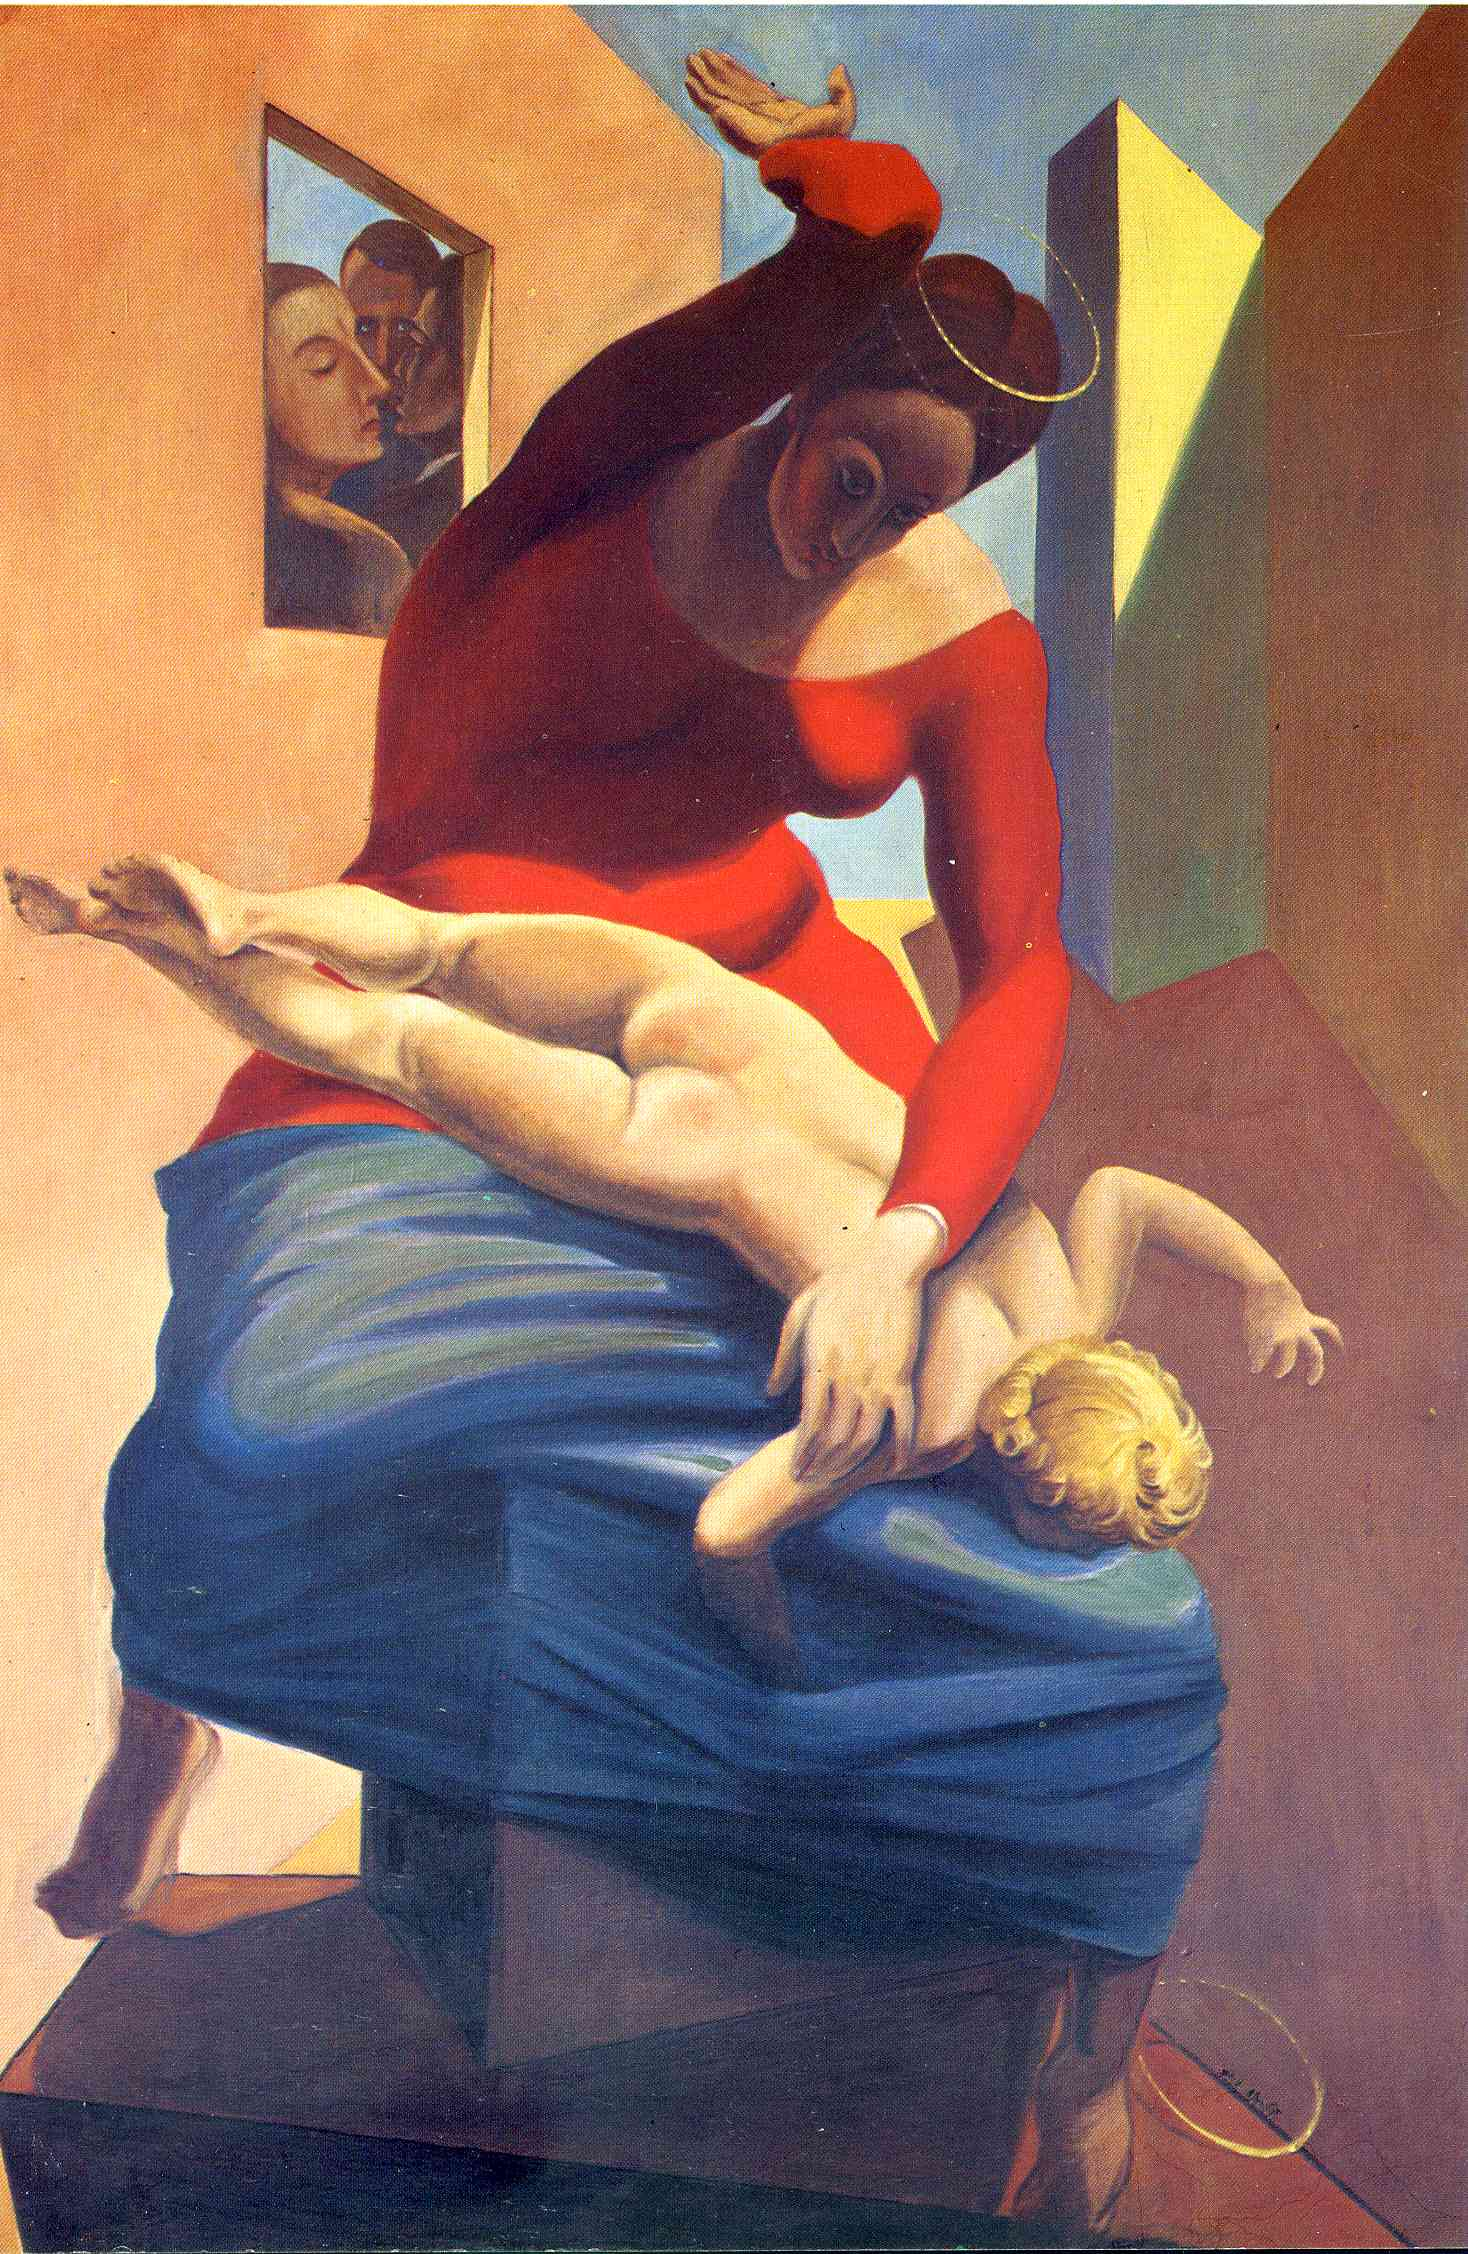 Max Ernst: The Virgin Spanking the Christ Child Before Three Witnesses: Andre Breton, Paul Eluard, and the Painter (1926)